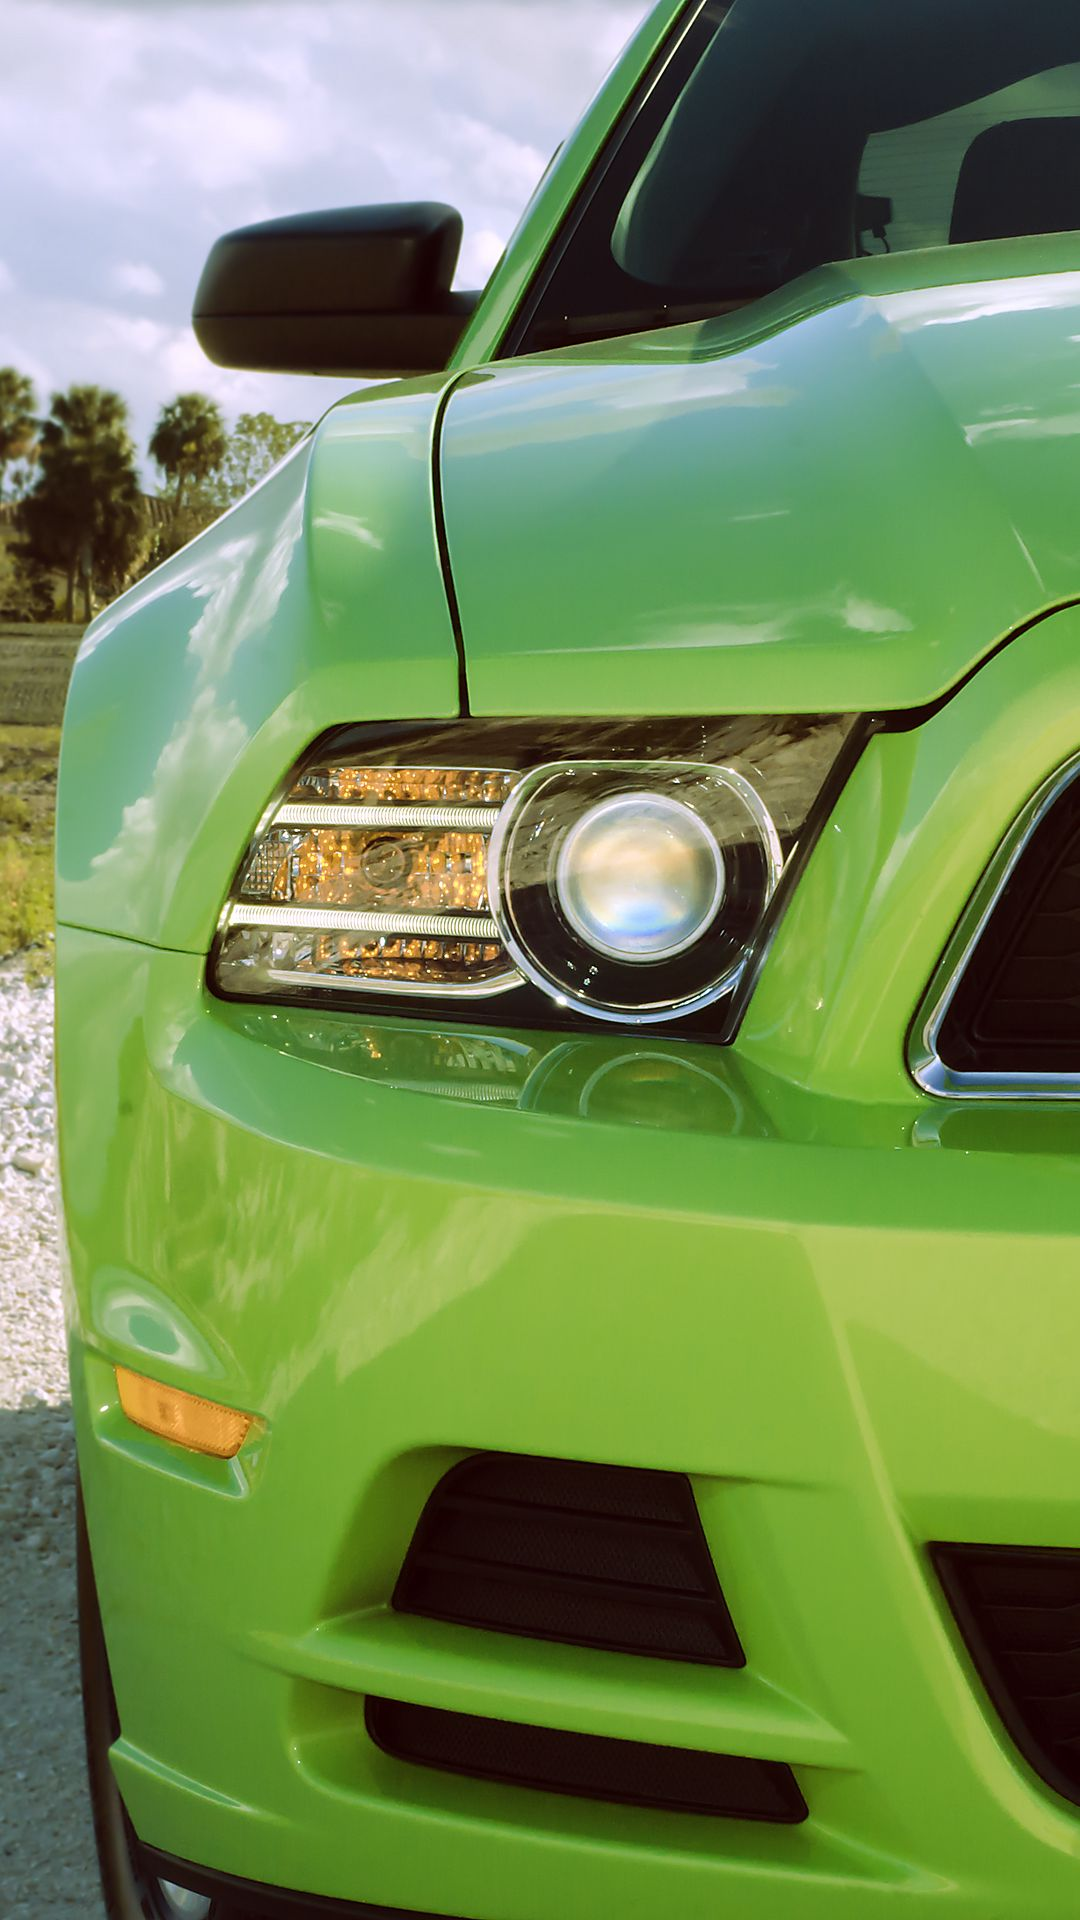 Ford Mustang Headlight Wallpapers Free Download